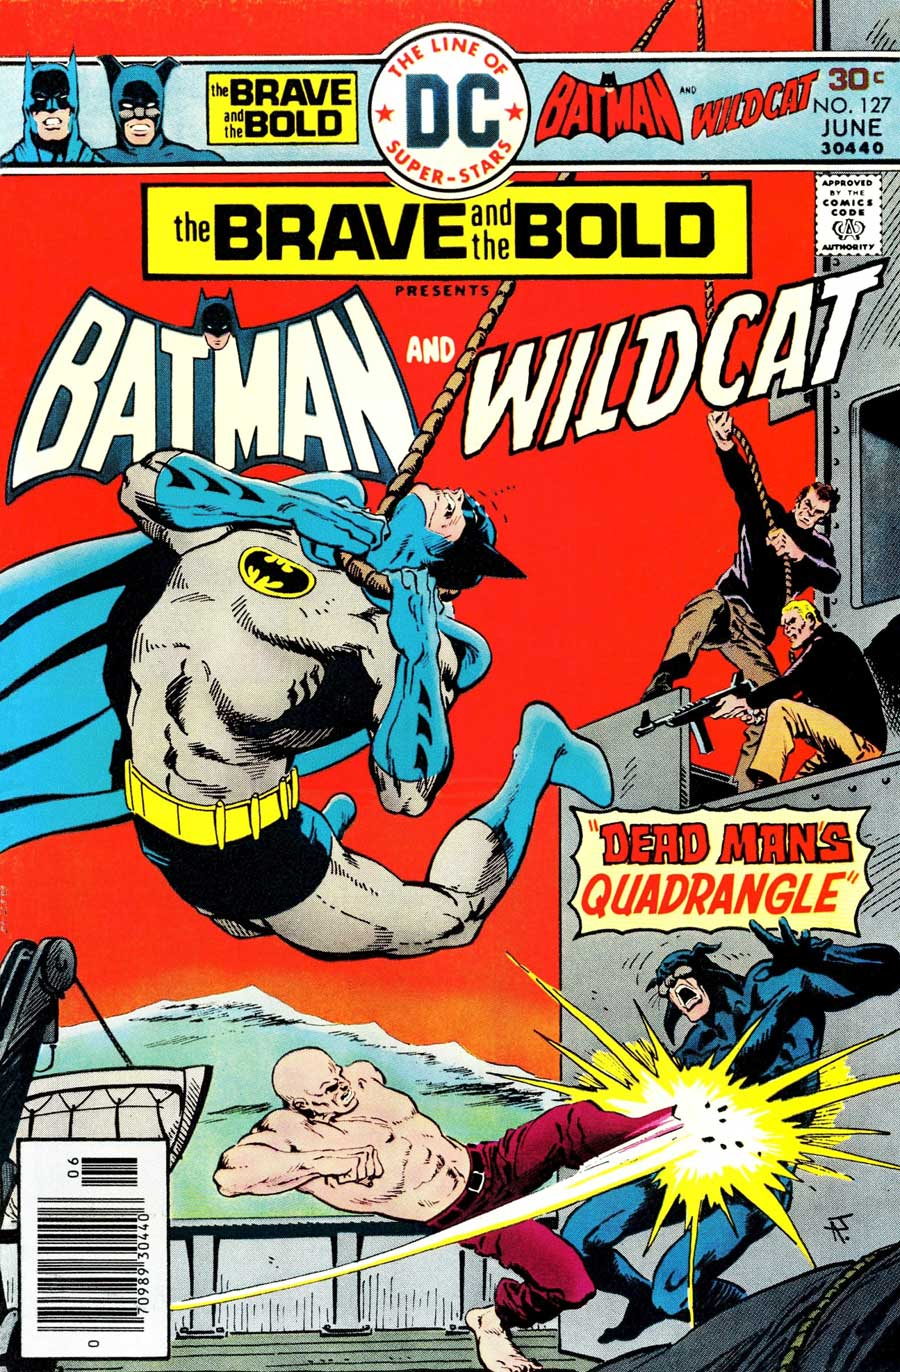 The Brave and the Bold #127 by Bob Haney and Jim Aparo with Batman and Wildcat